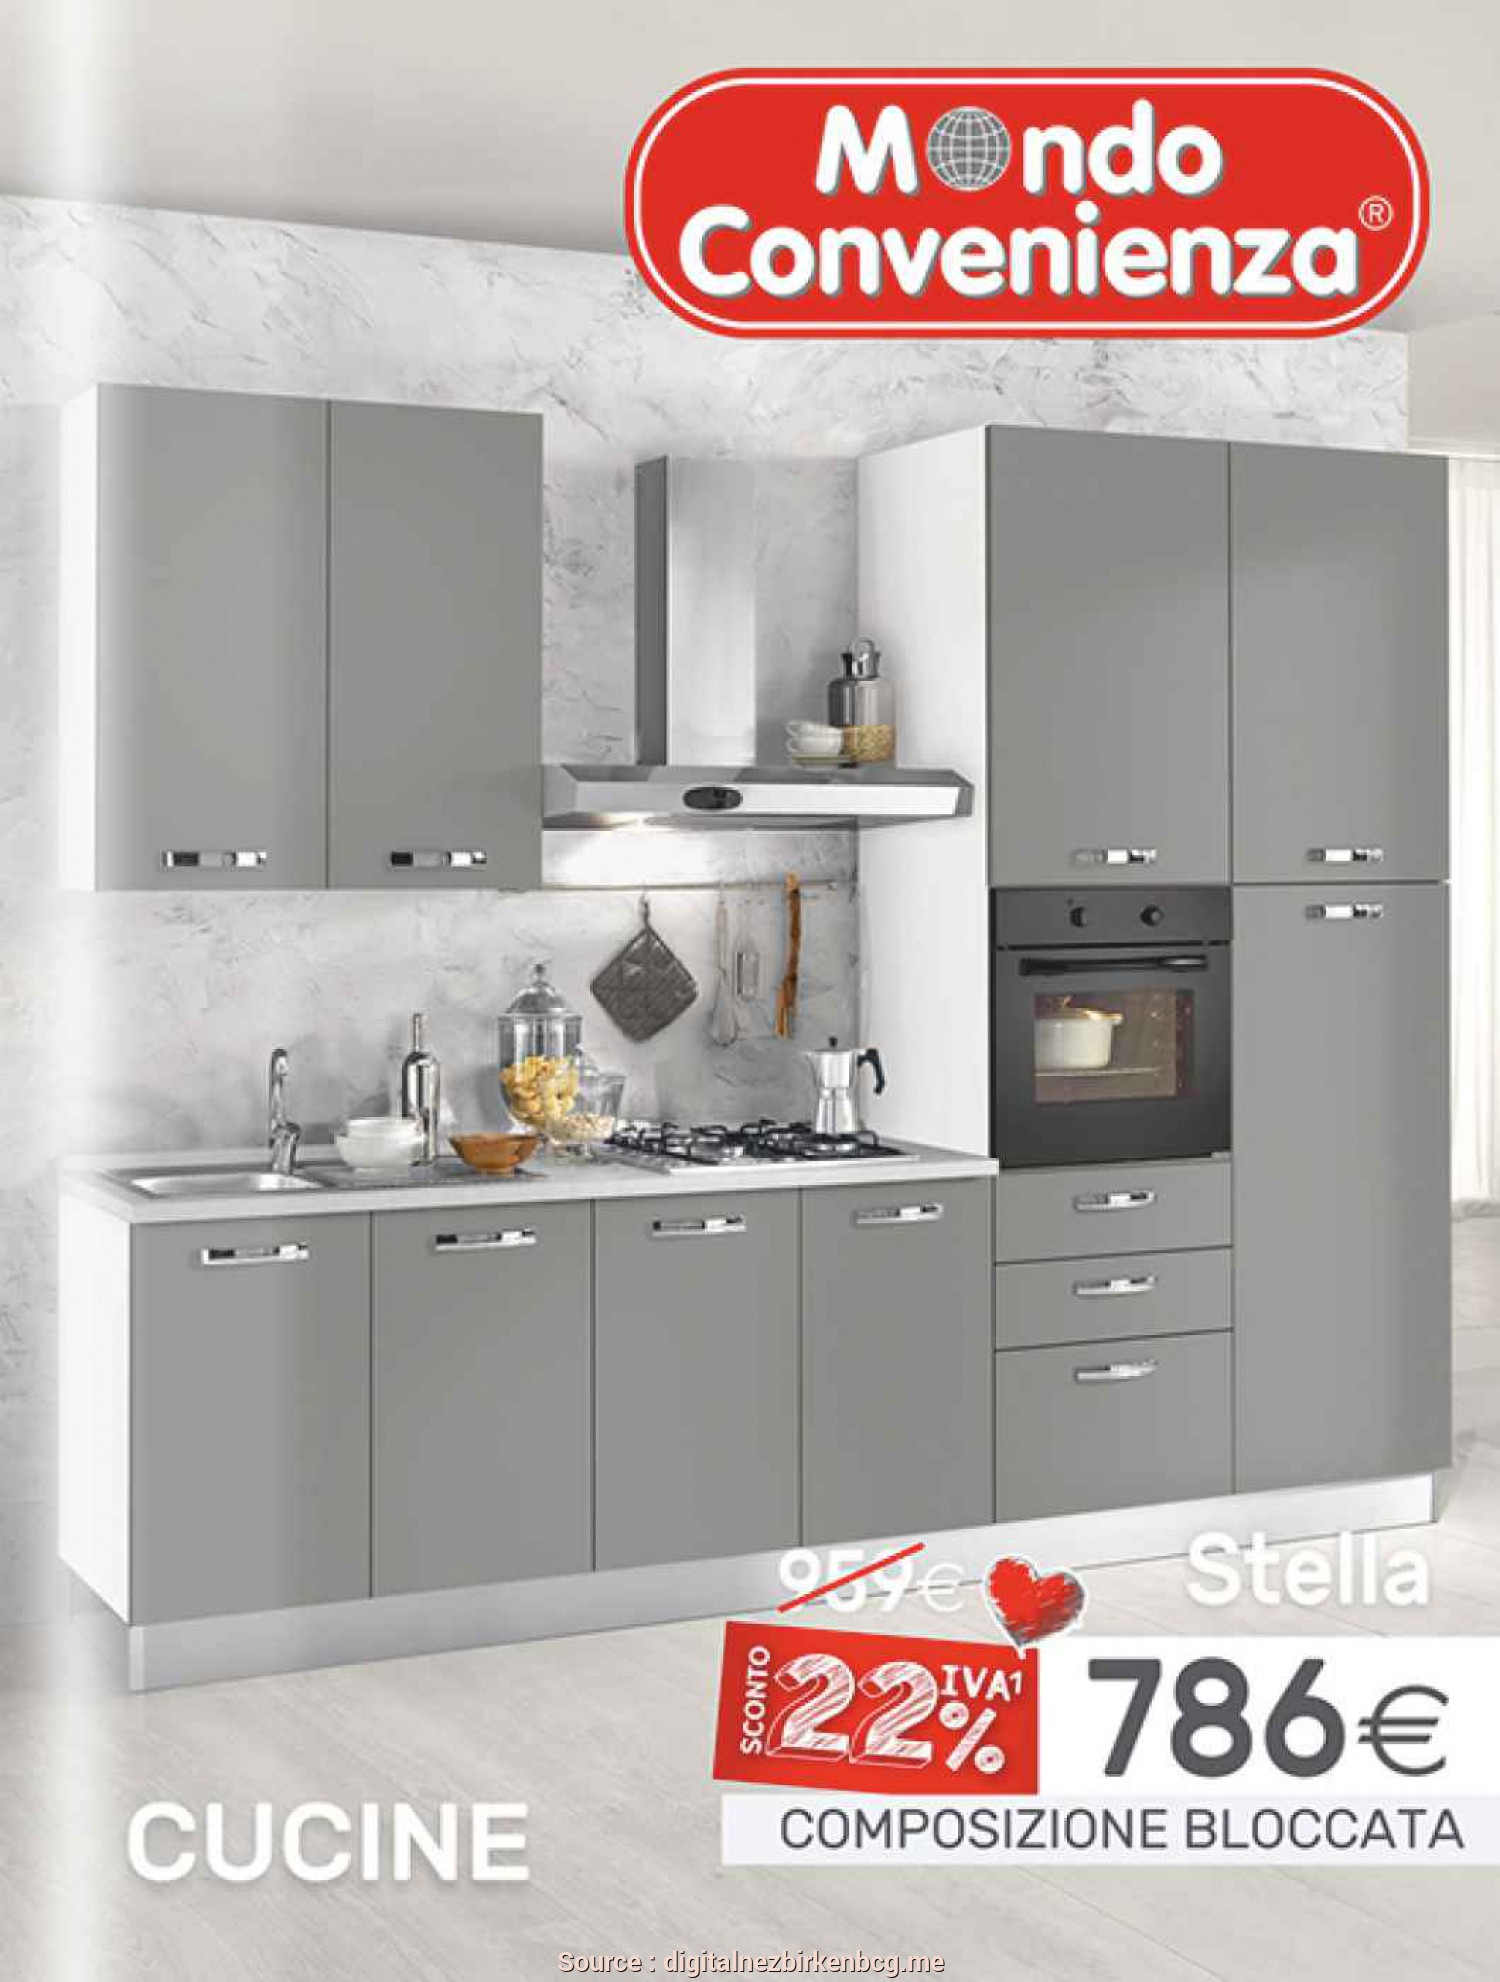 Mondo Convenienza Di Catanzaro, Locale Full Size Of Letti King Size Mondo Convenienza Cucine Mondo Convenienza Catalogo Autunno 2017 Cucine Letto